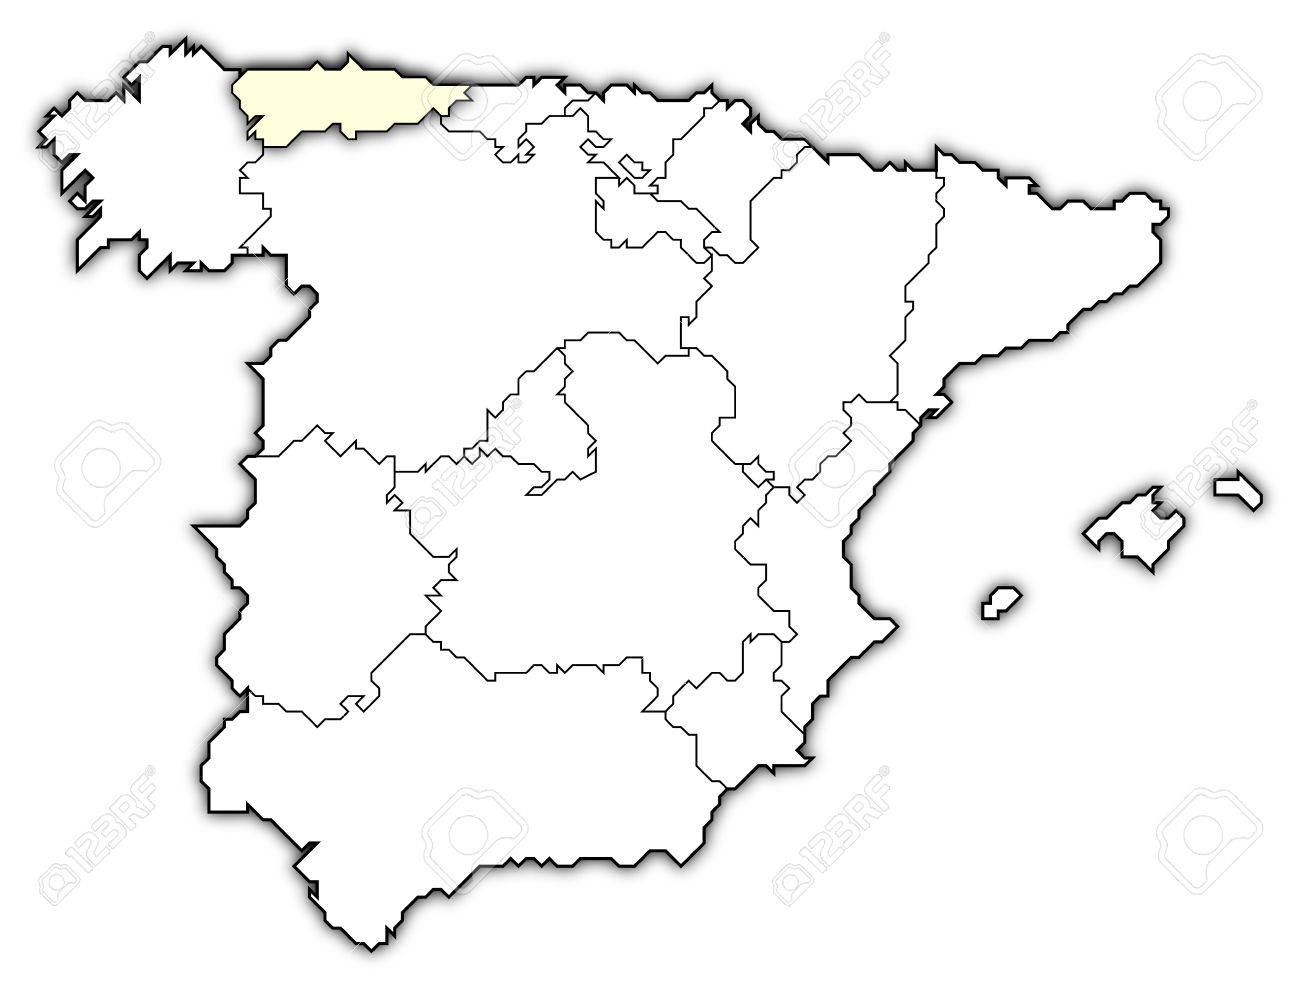 Map Of Spain With Regions.Political Map Of Spain With The Several Regions Where Asturias